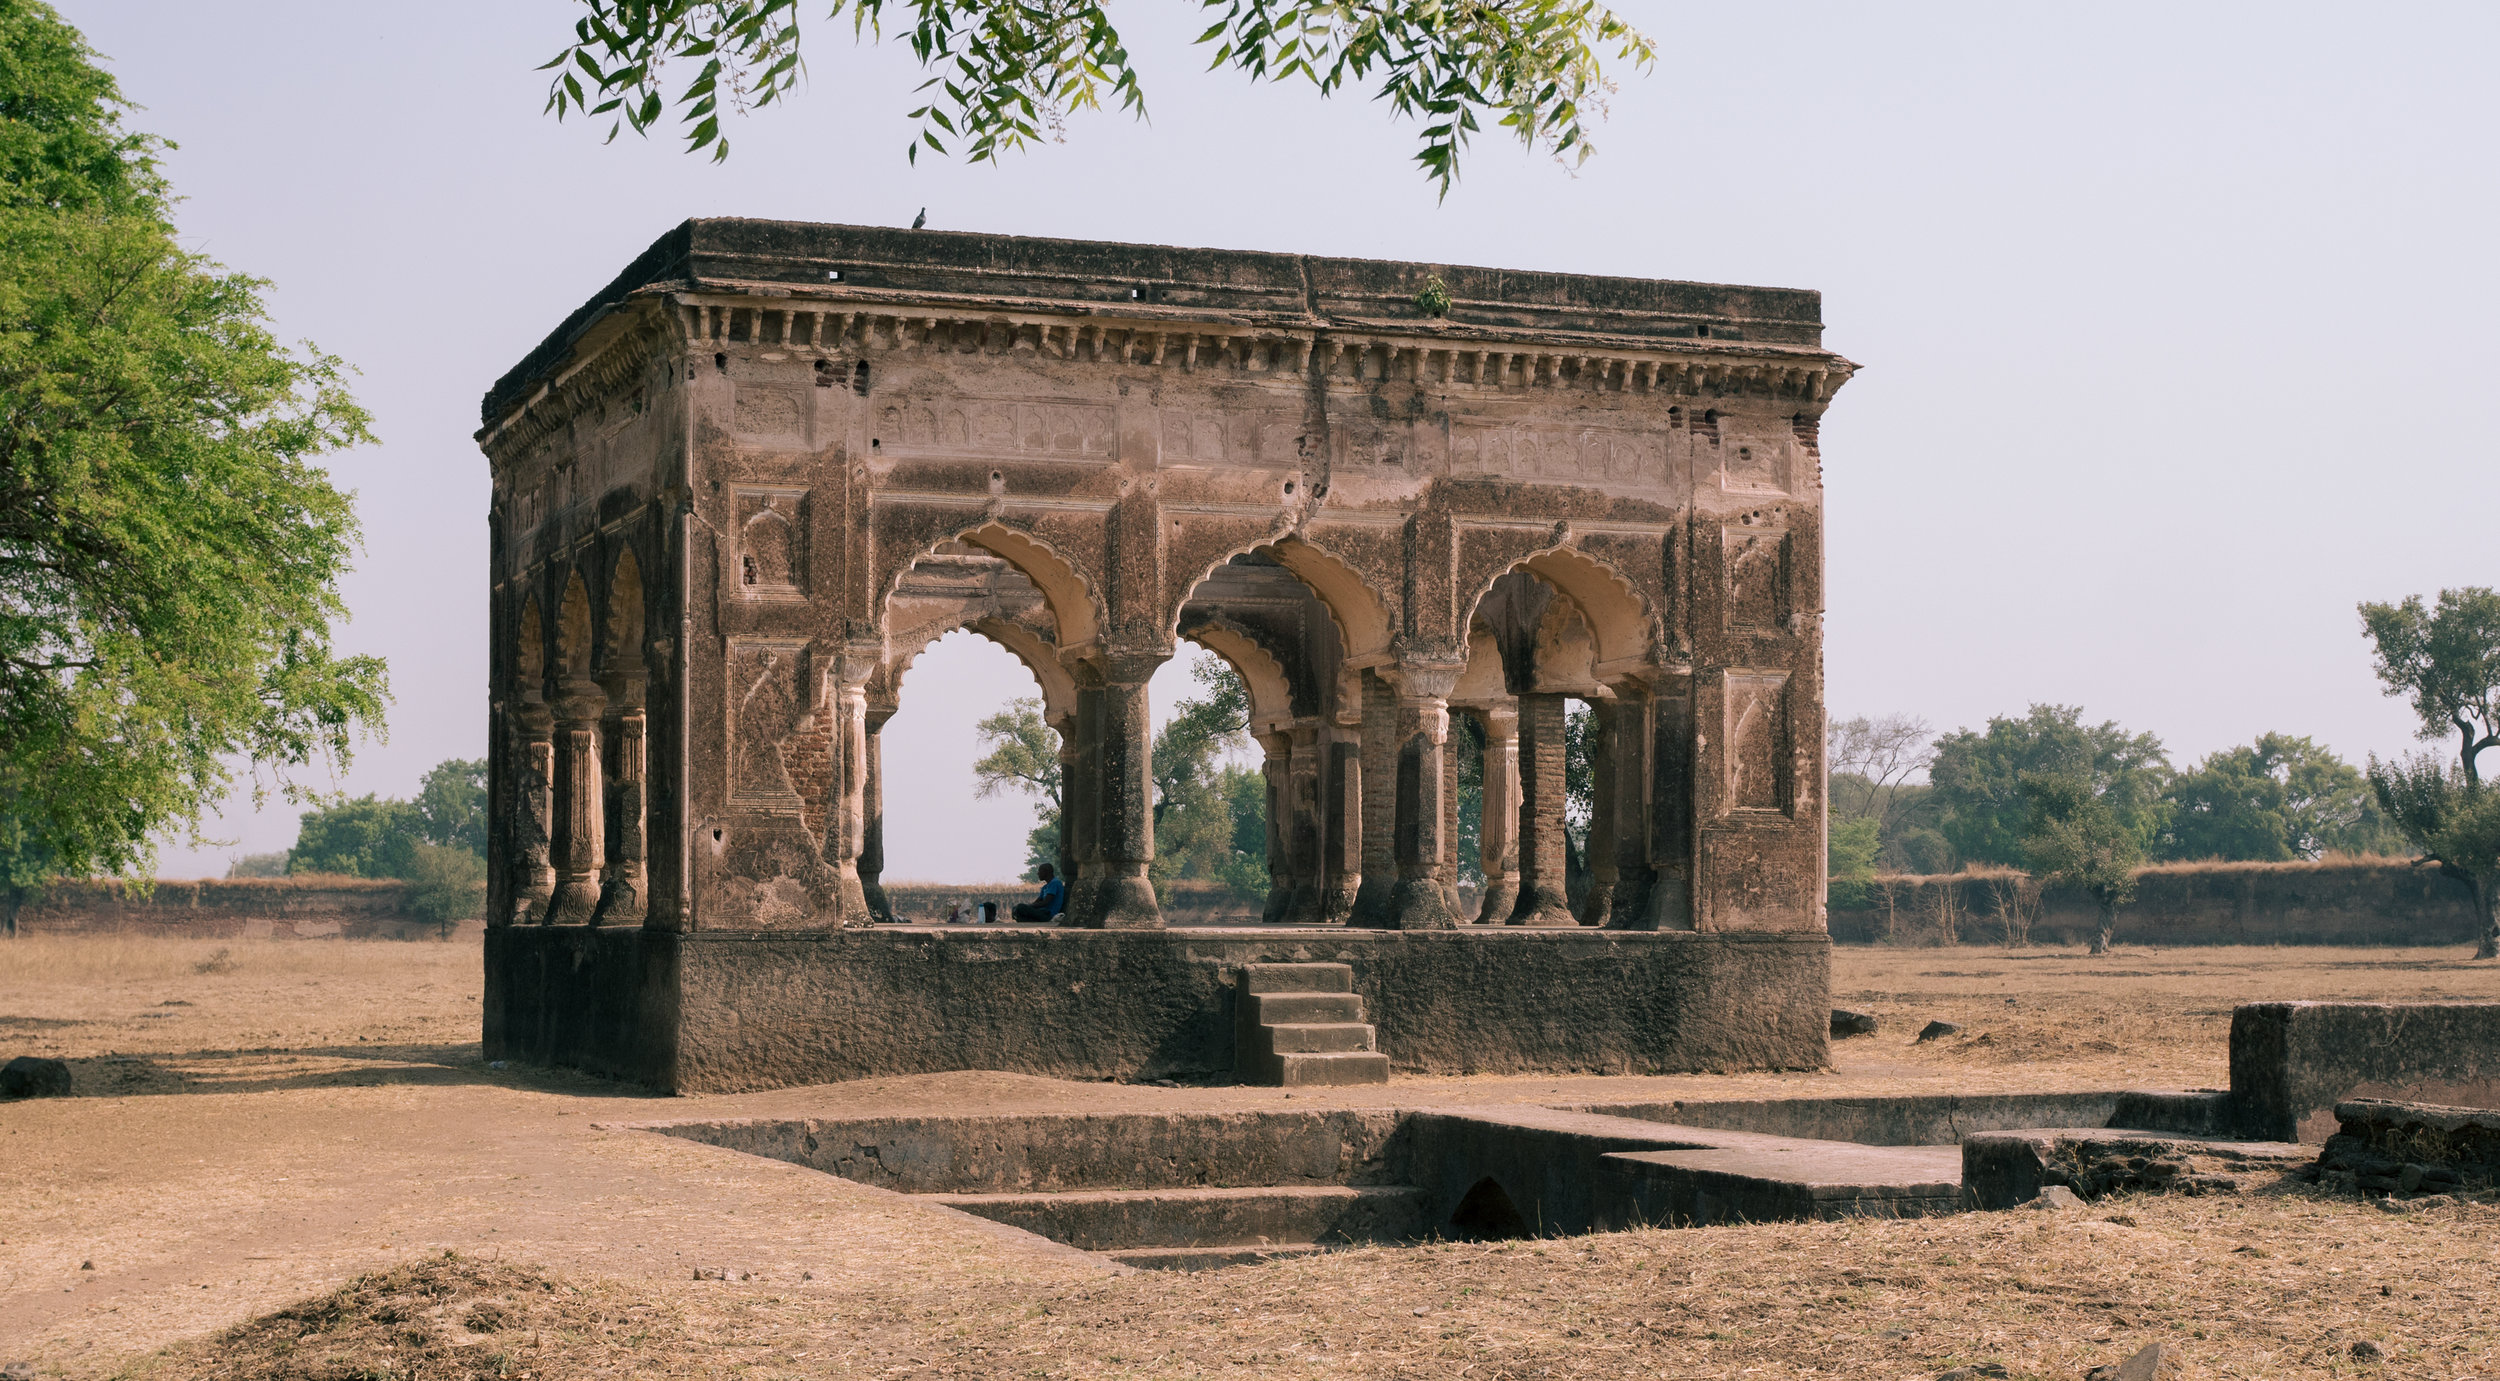 The body of Mumtaz Mahal was laid to rest here for six months before it was transported to Agra and eventually buried at the Taj Mahal.